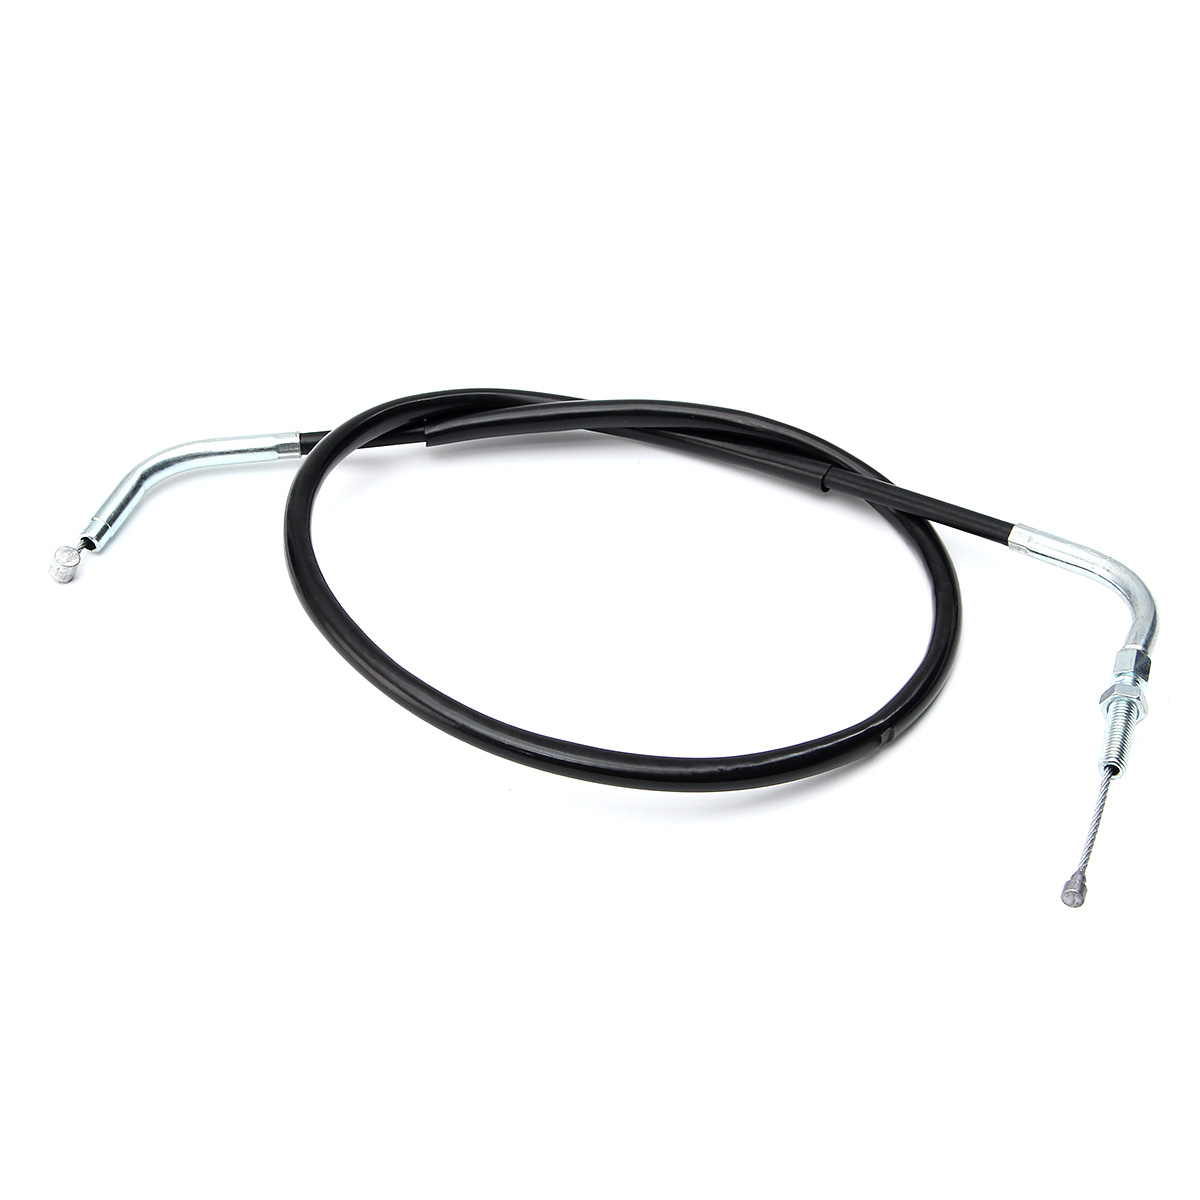 motorcycle clutch cable for suzuki gsxr750 1996-1999